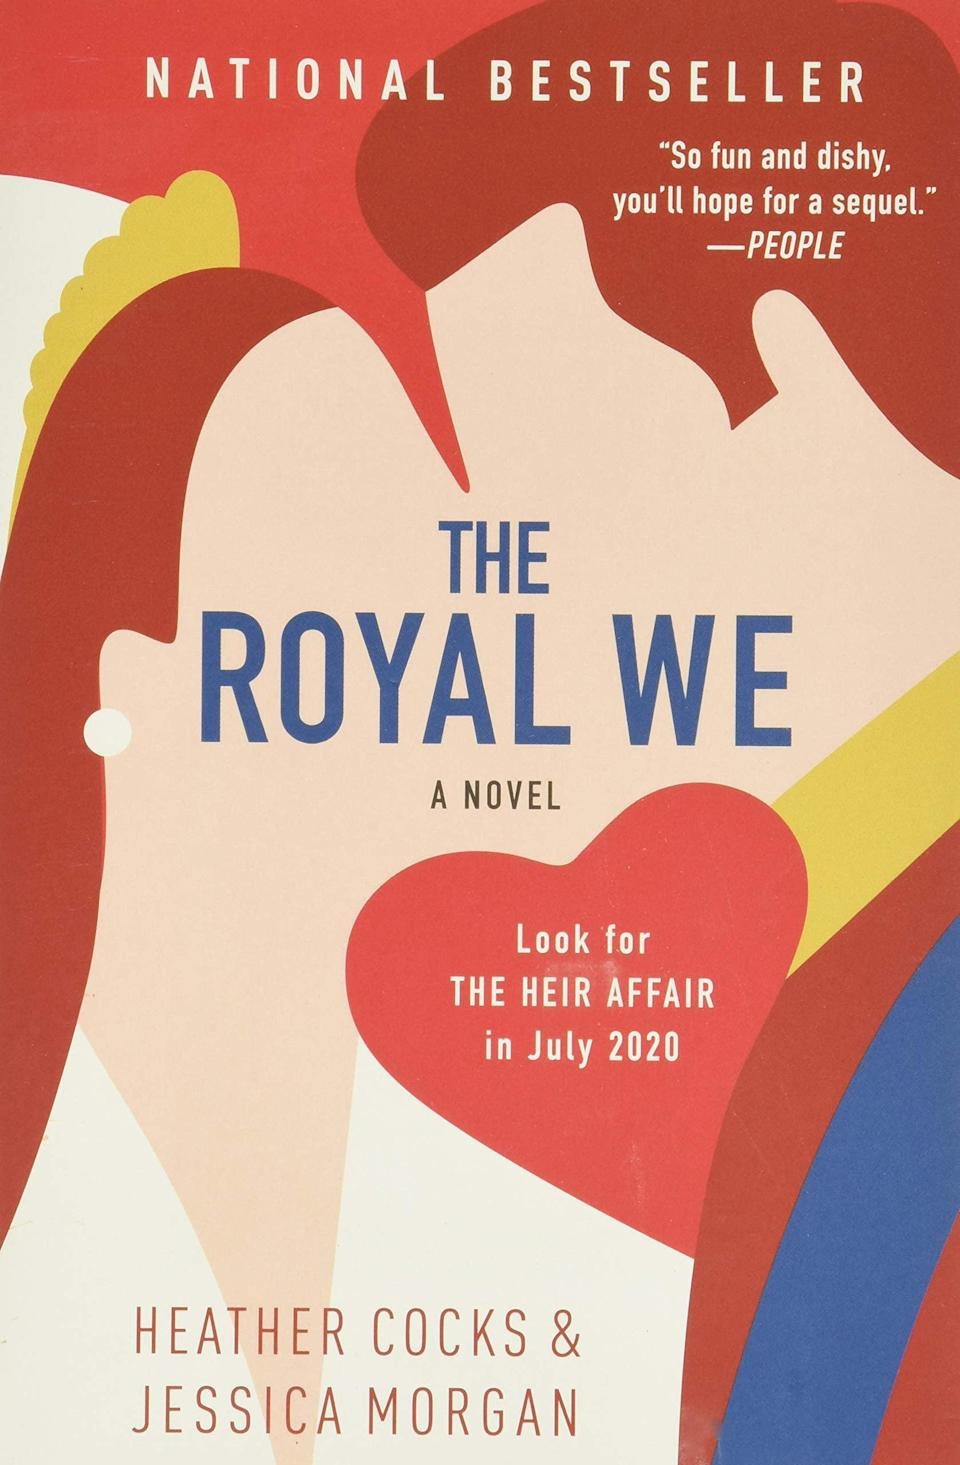 <p>Fans of Prince William and Kate Middleton have probably heard of this book, and if they haven't read it already, they're in for a real treat. <span><strong>The Royal We</strong> by Heather Cocks and Jessica Morgan</span> ($12) is a fictional tale inspired by the courtship of the Duke and Duchess of Cambridge written by two women who run a popular celebrity fashion site (so if anyone knows the inside scoop, it's probably them). In the story, American Bex Porter meets Nick while she's studying abroad at Oxford. Little does she know, he's actually Nicholas, Prince of Wales, but that doesn't stop her from falling for him.</p> <p>Anyone who enjoys following royal coverage will delight at the parallels between this story and the lives of the real royal family. It's a fun concept and romantic, yes, but what I actually like about this book is that there's angst too as Bex grapples with what it means to be in a true partnership with someone in Nick's position. It's an emotional rollercoaster ride!</p>